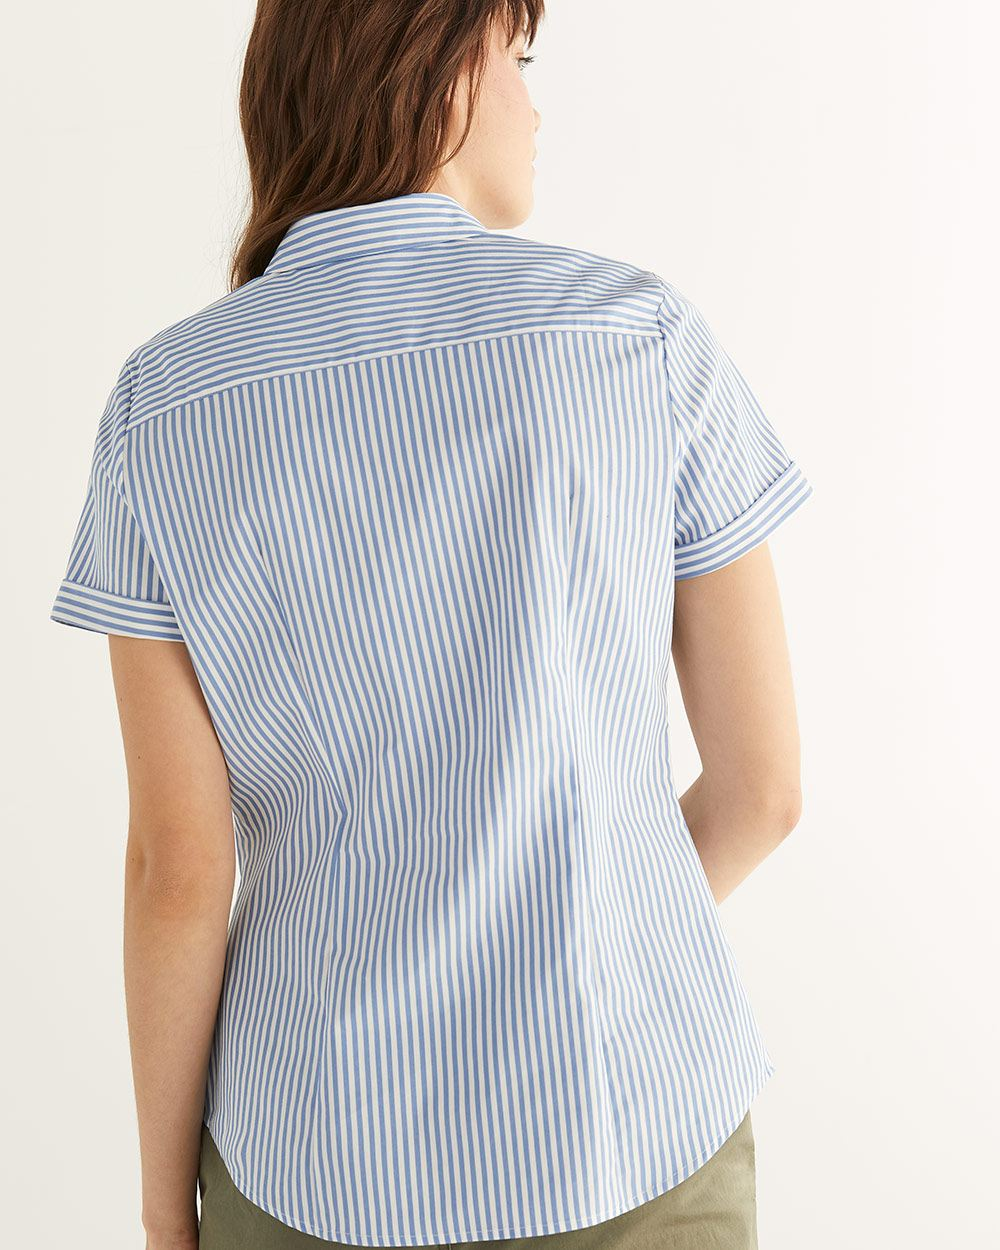 R Essentials Short Sleeve Poplin Shirt